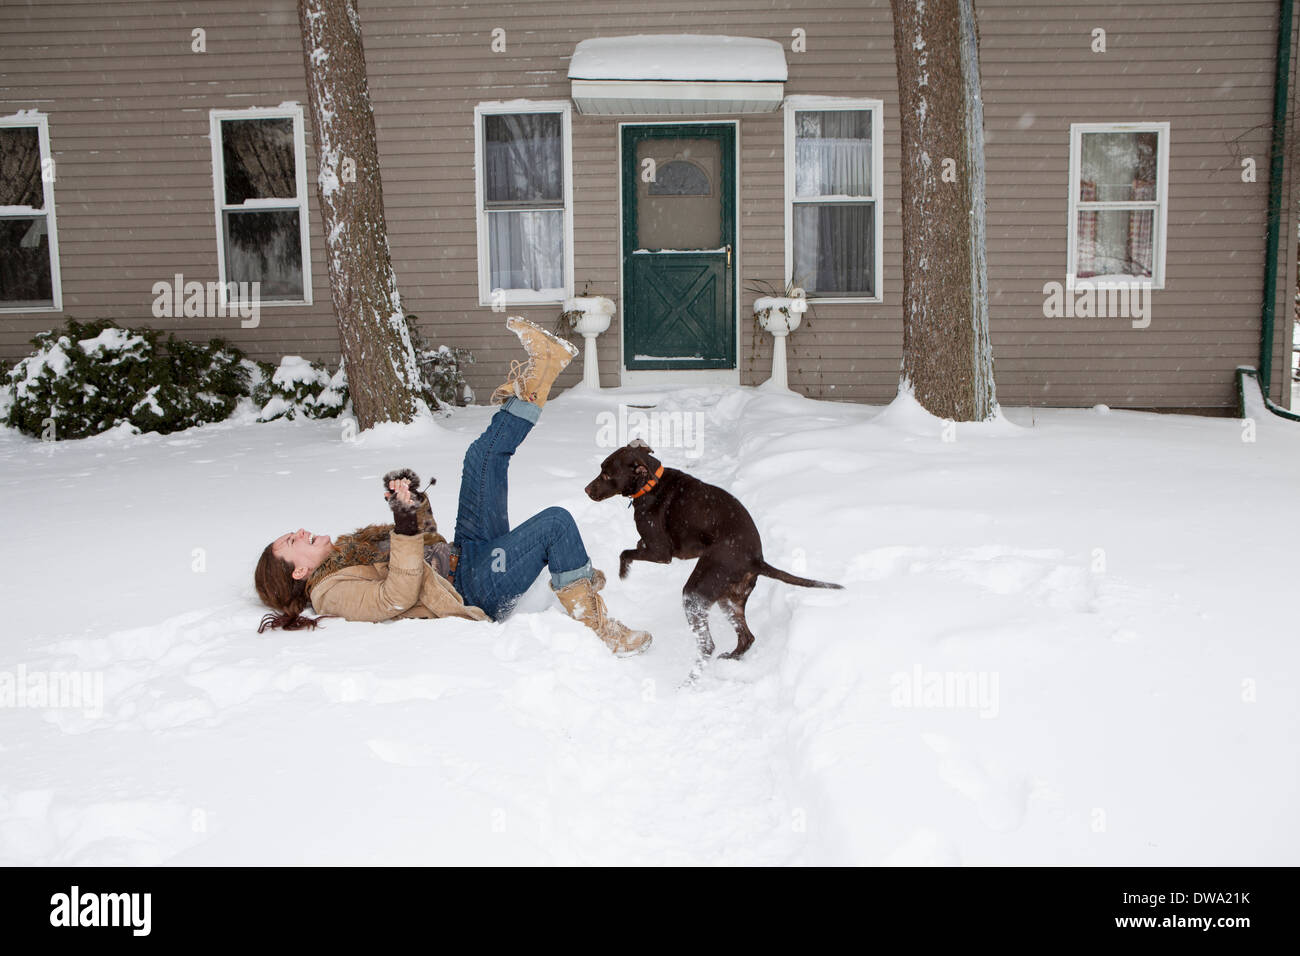 Mid adult woman lying in snow outside house Playing with dog Photo Stock